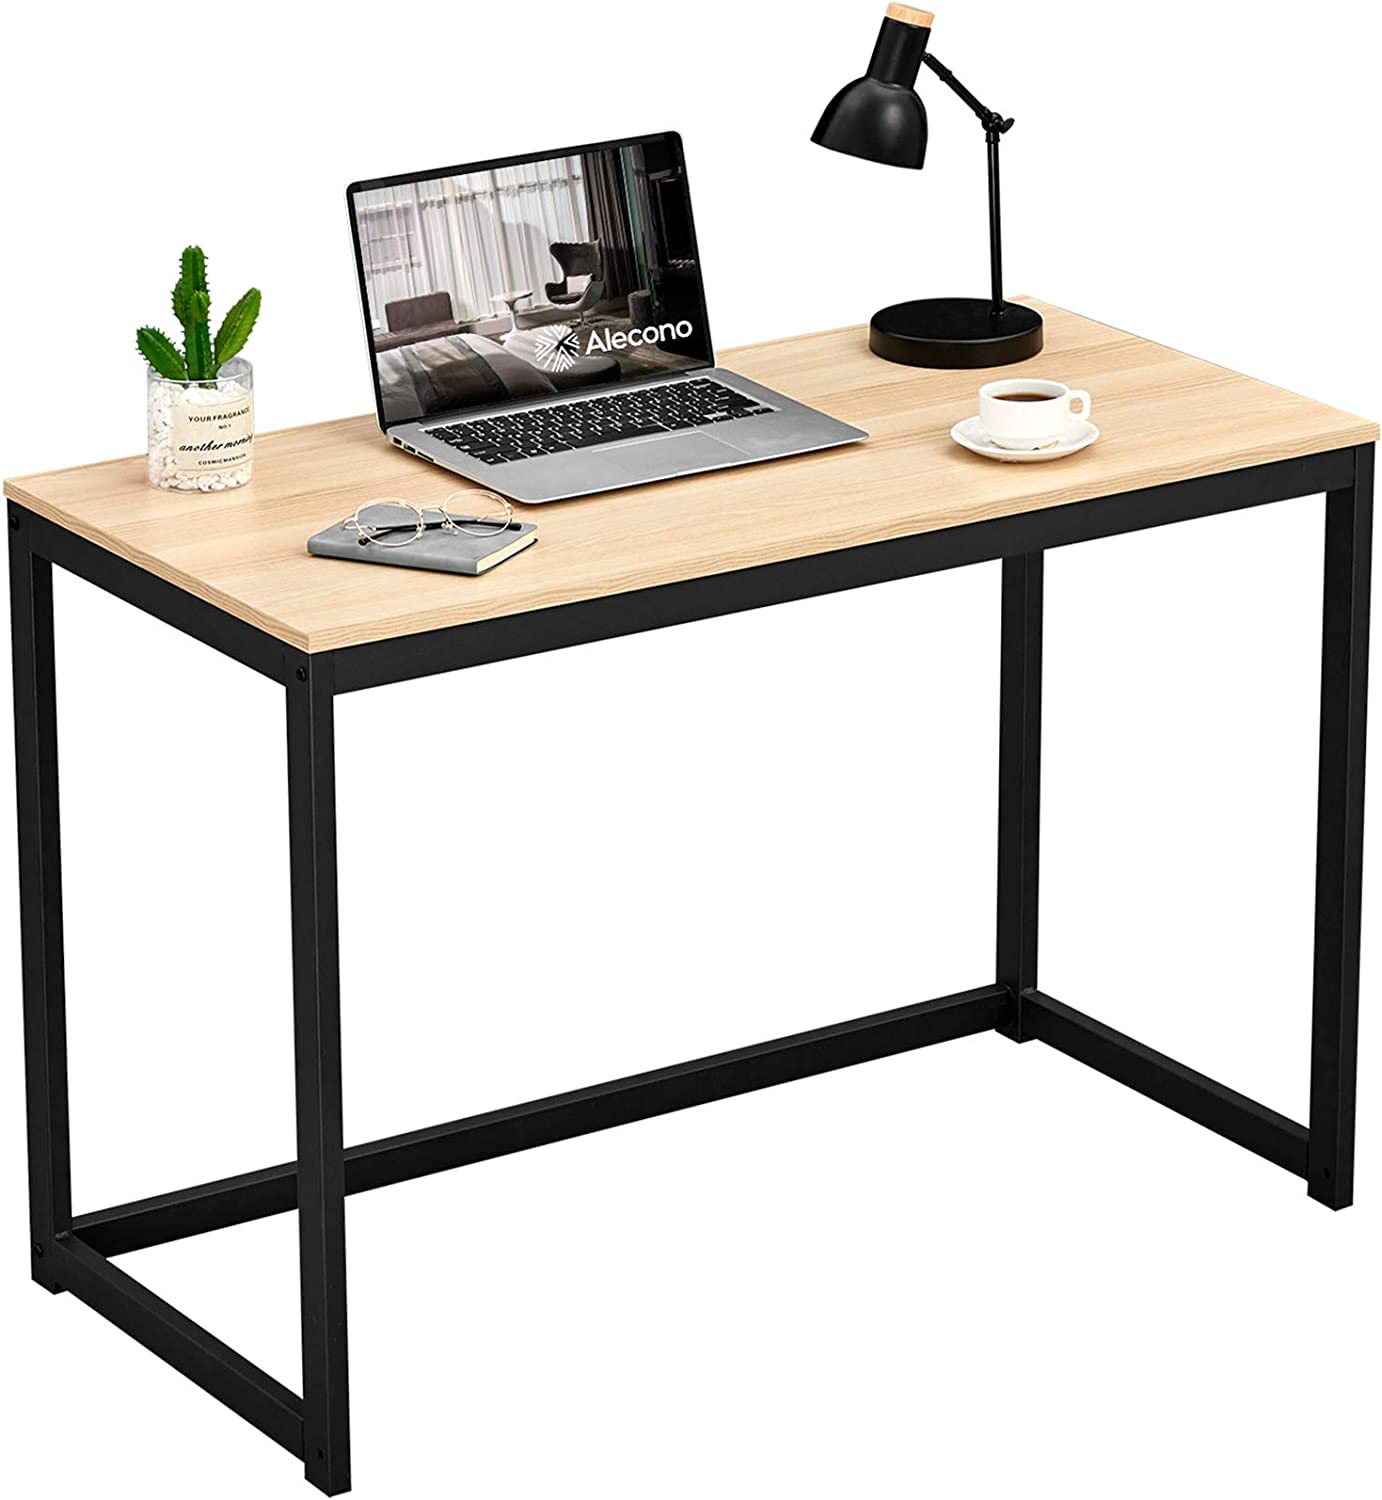 Alecono 39 inch Small Home Office Desk Study Writing Desk for Small Space Simple Home Workstation Office Tiny Desk Student PC Gaming Table with Metal Frame Oak